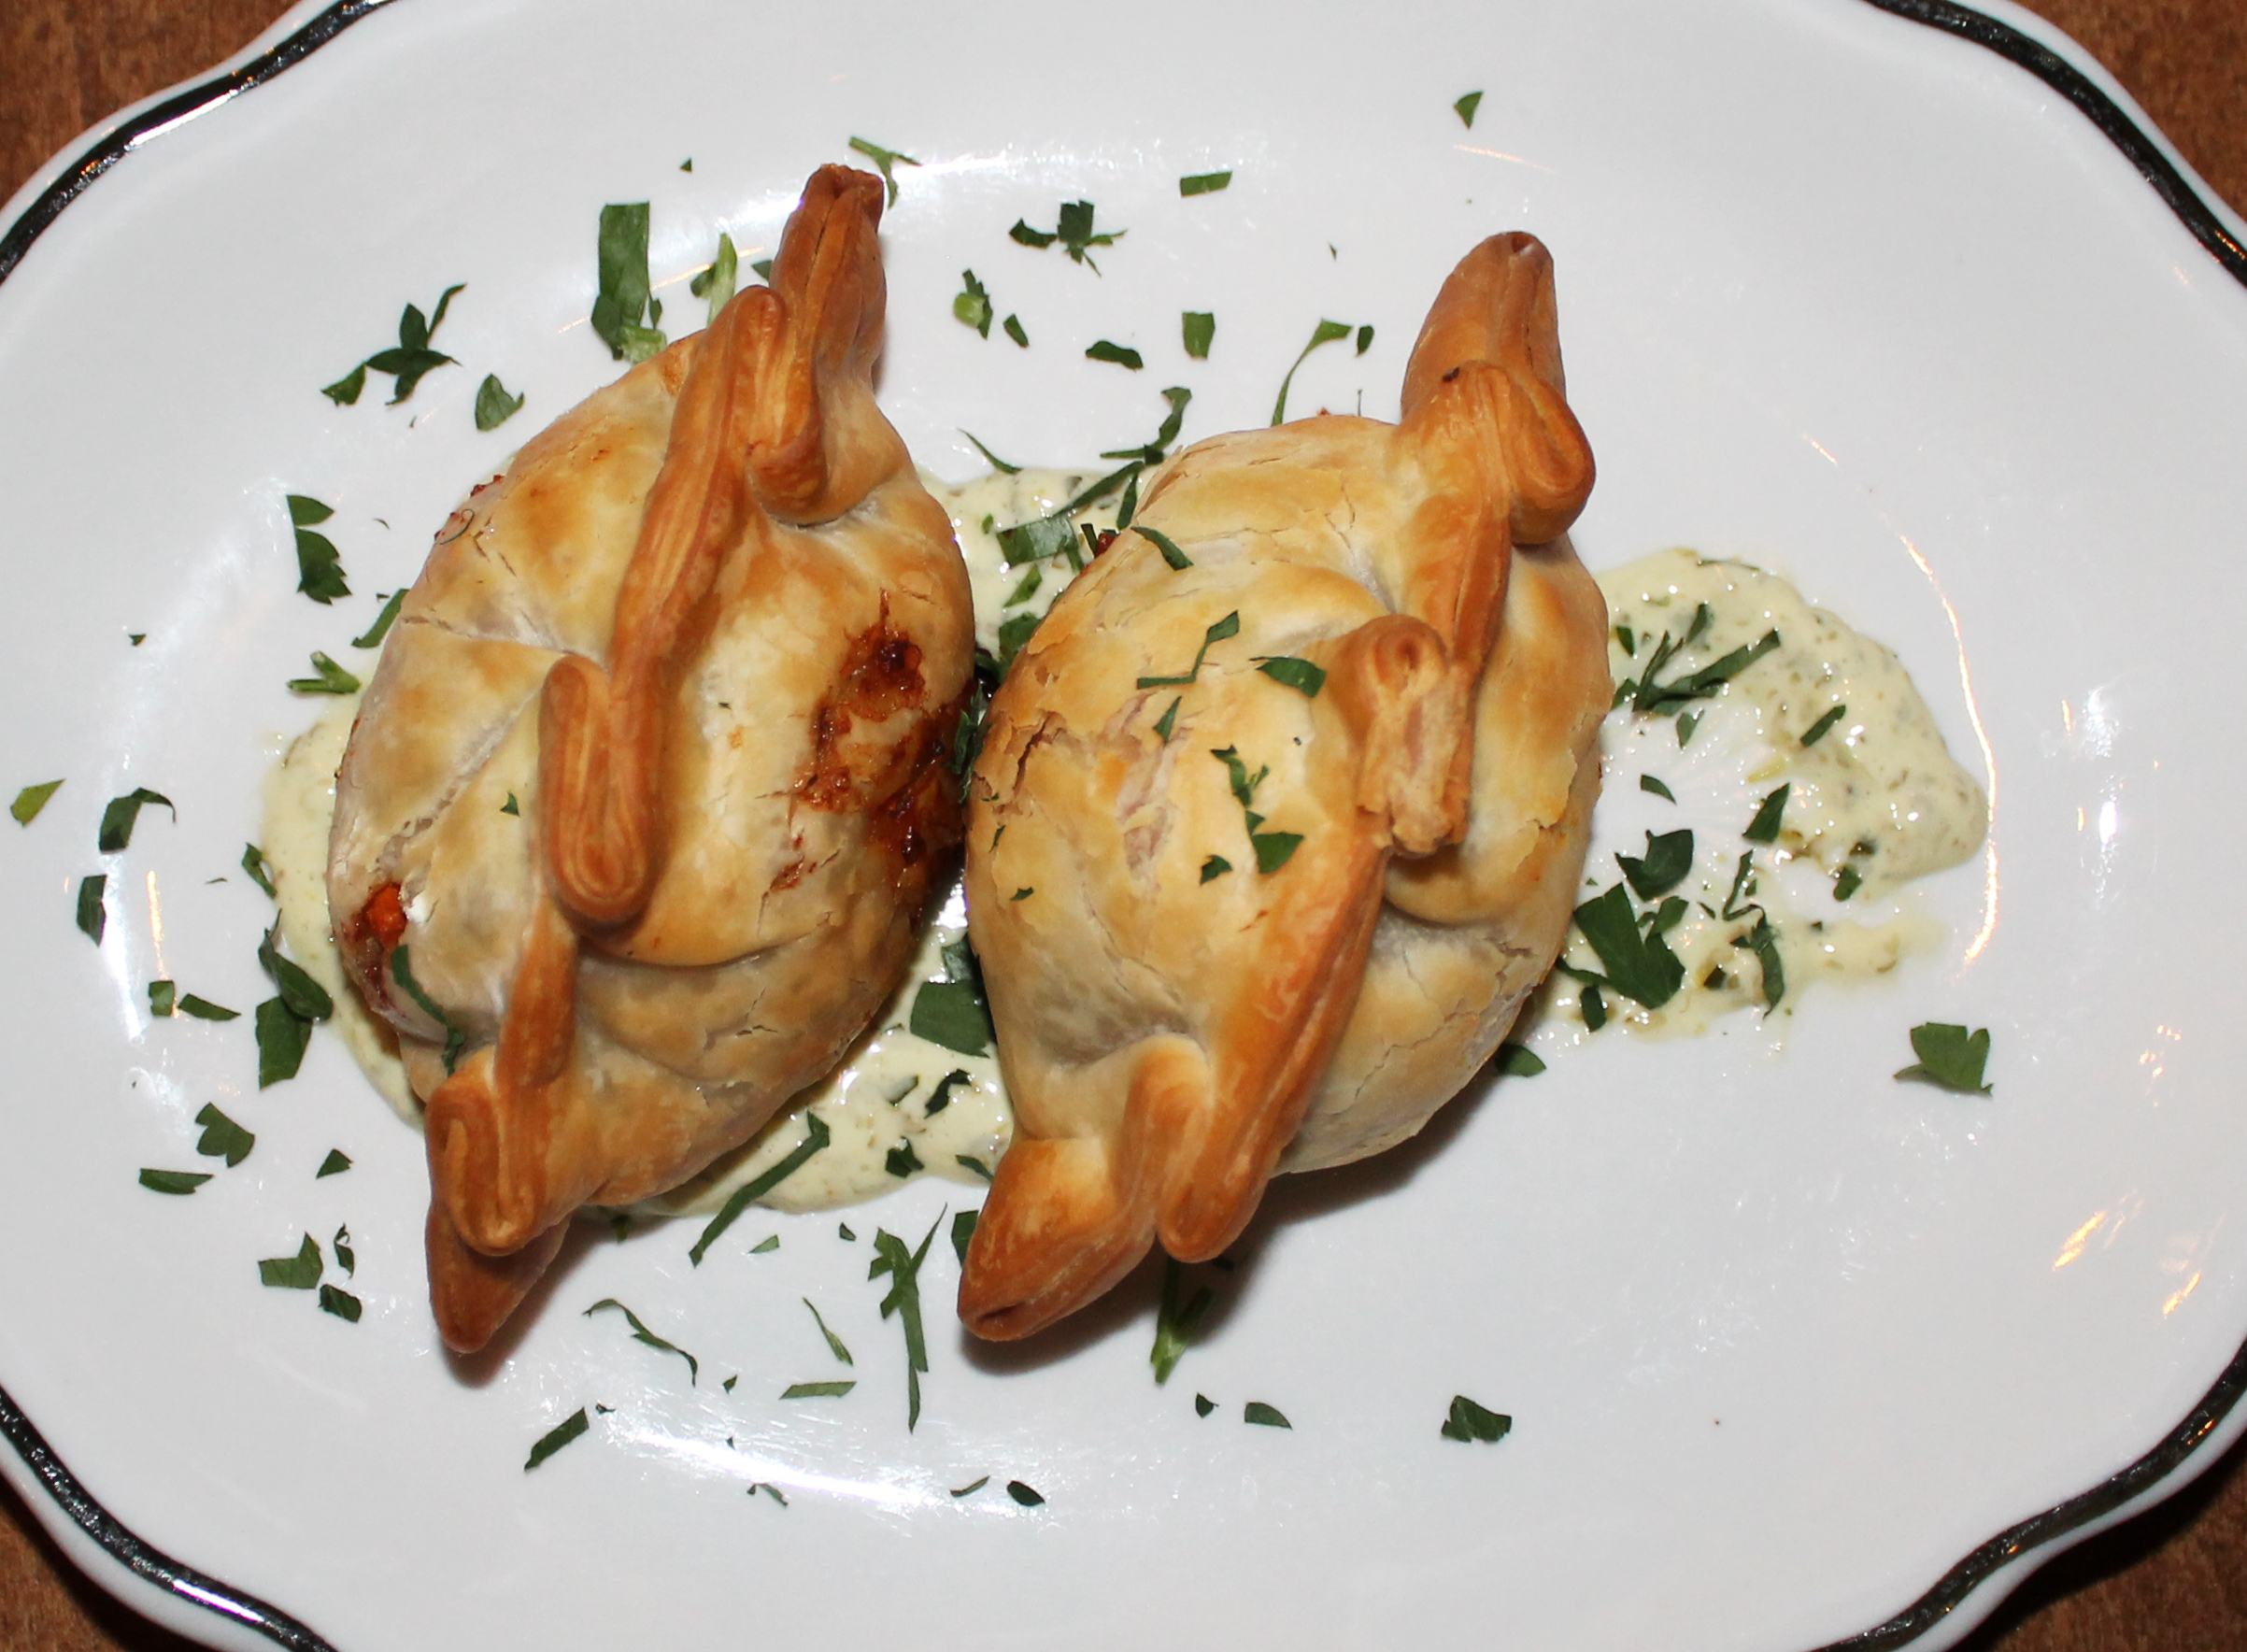 Empanadas Del Dia:baked in house, served in pairs